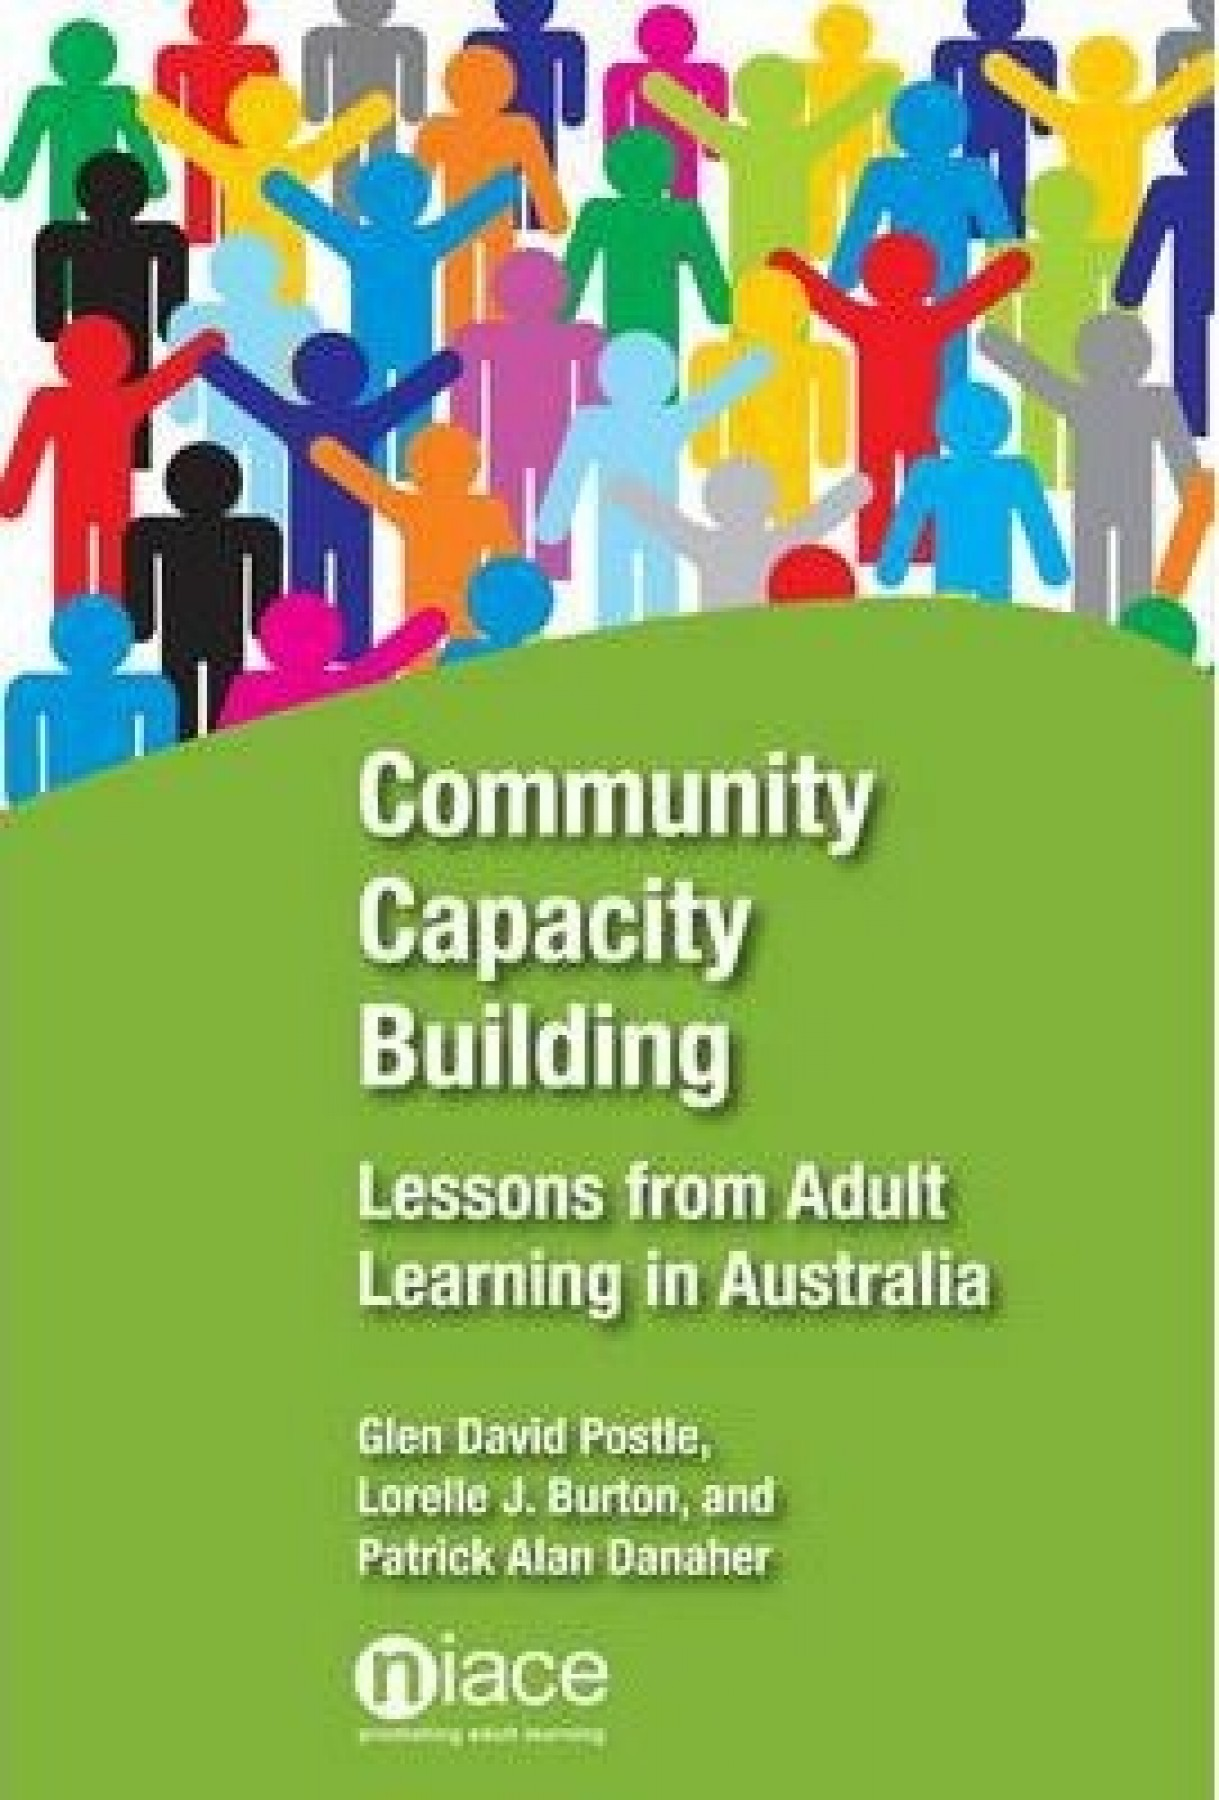 Community Capacity Building: Lessons from adult learning in Australia